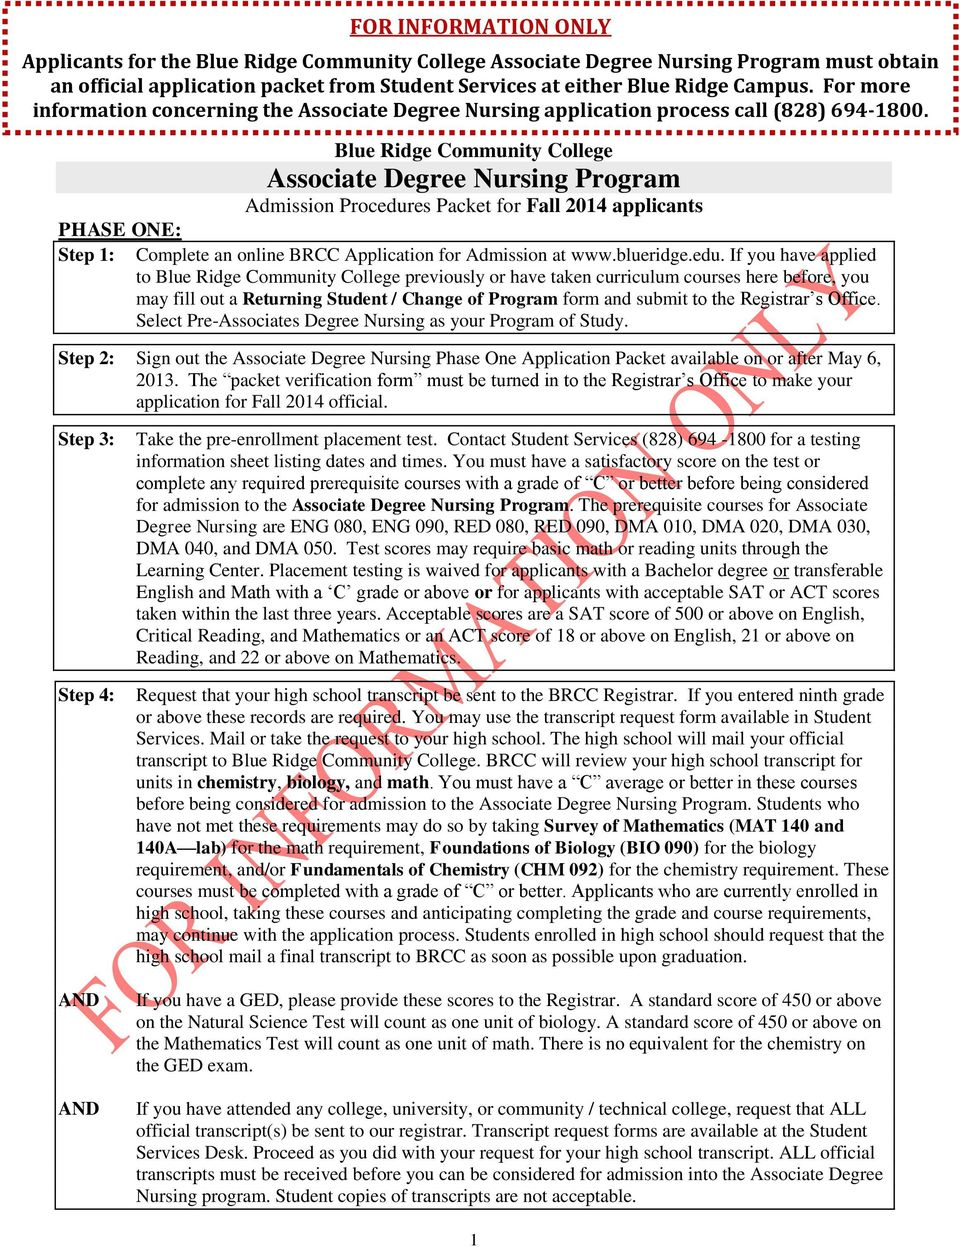 Blue Ridge Community College Associate Degree Nursing Program Admission Procedur